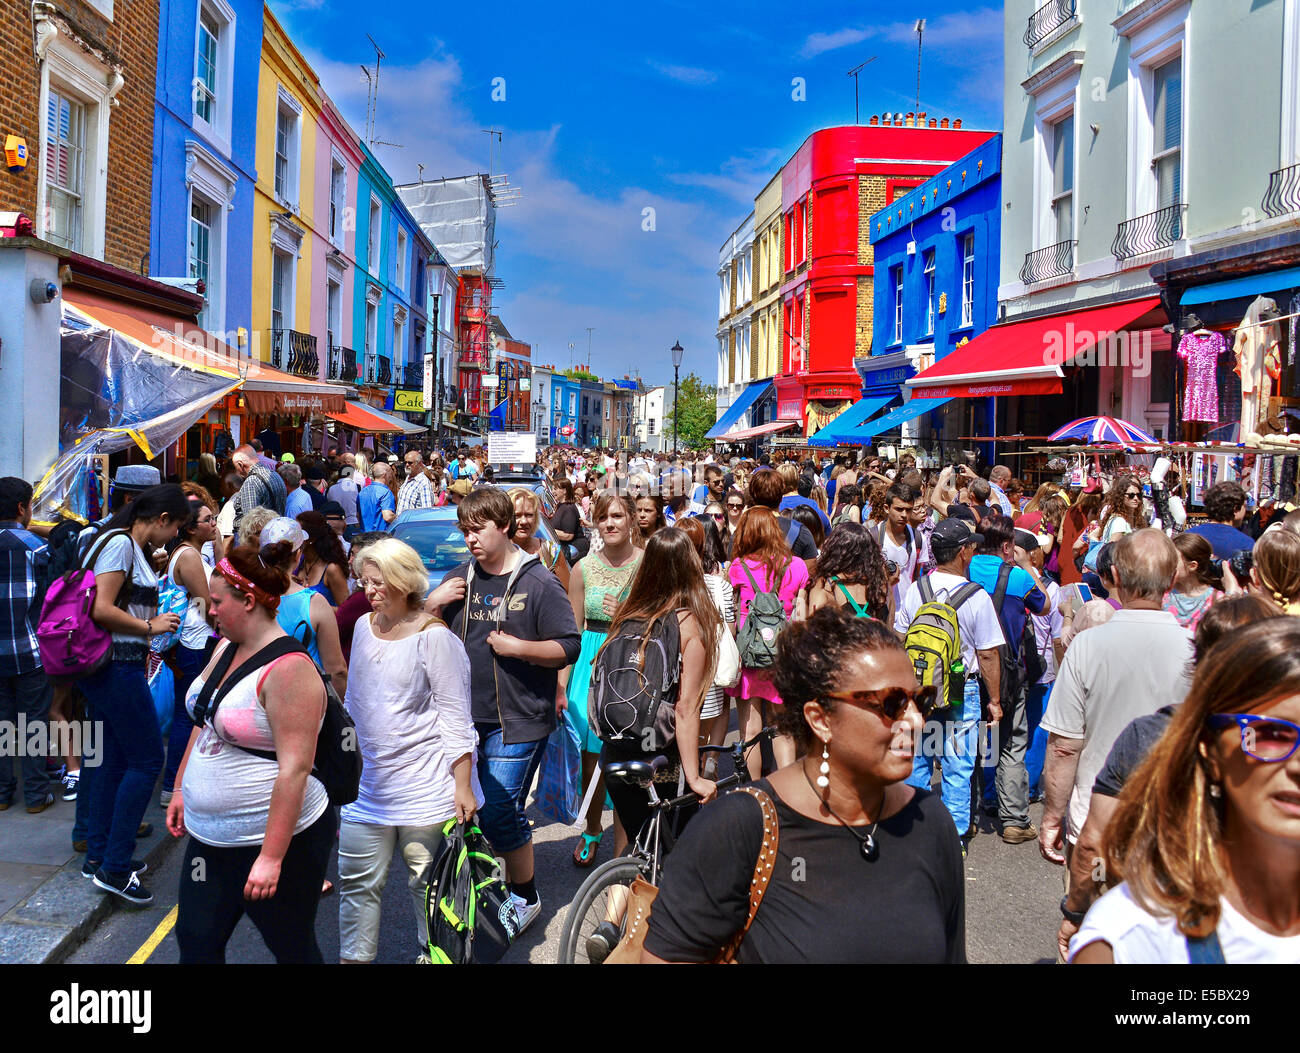 Portobello Road is a street in the Notting Hill - Stock Image